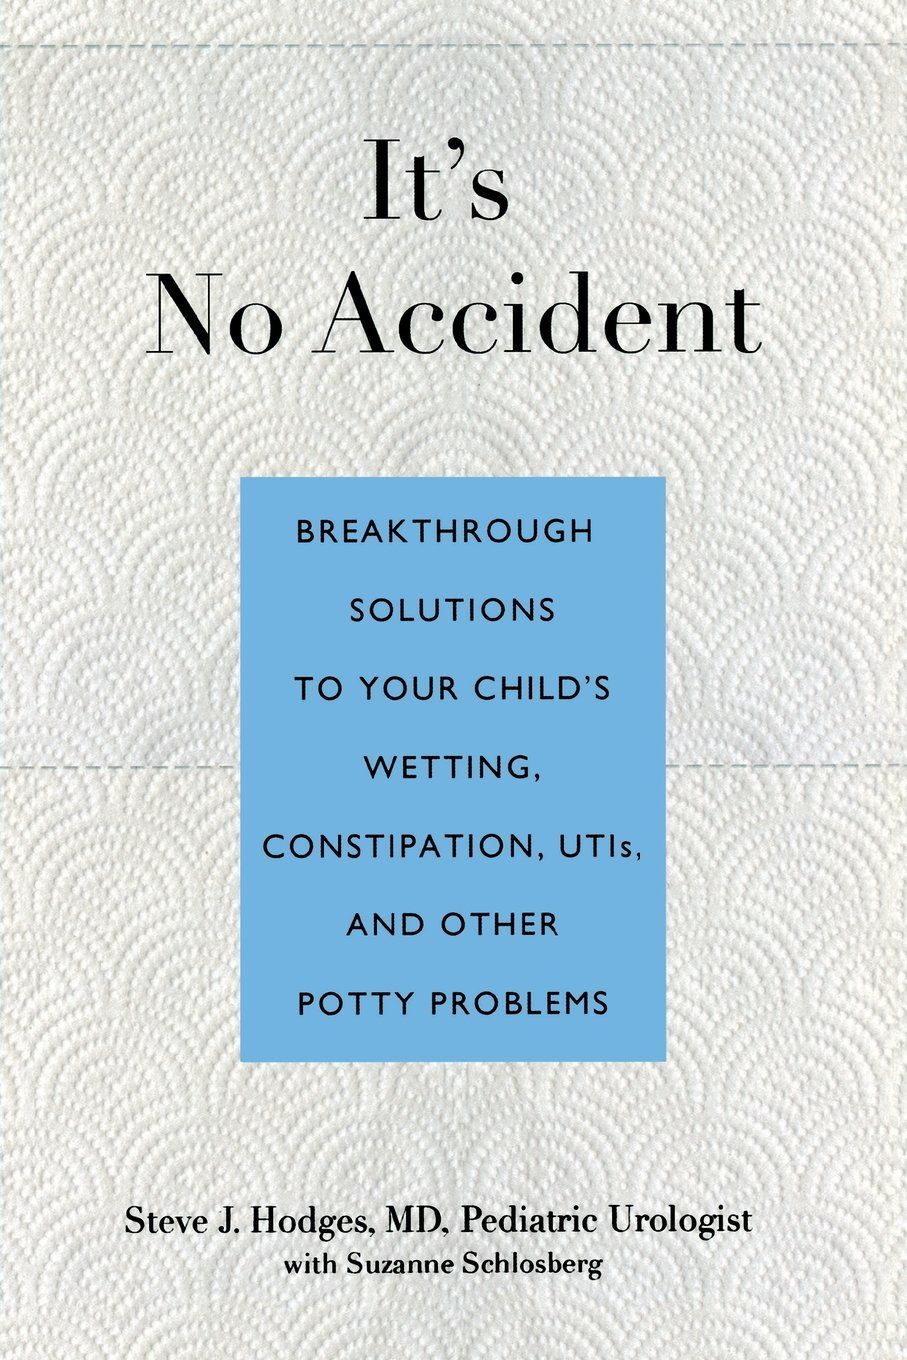 How to Handle Toilet Training Accidents - Howcast